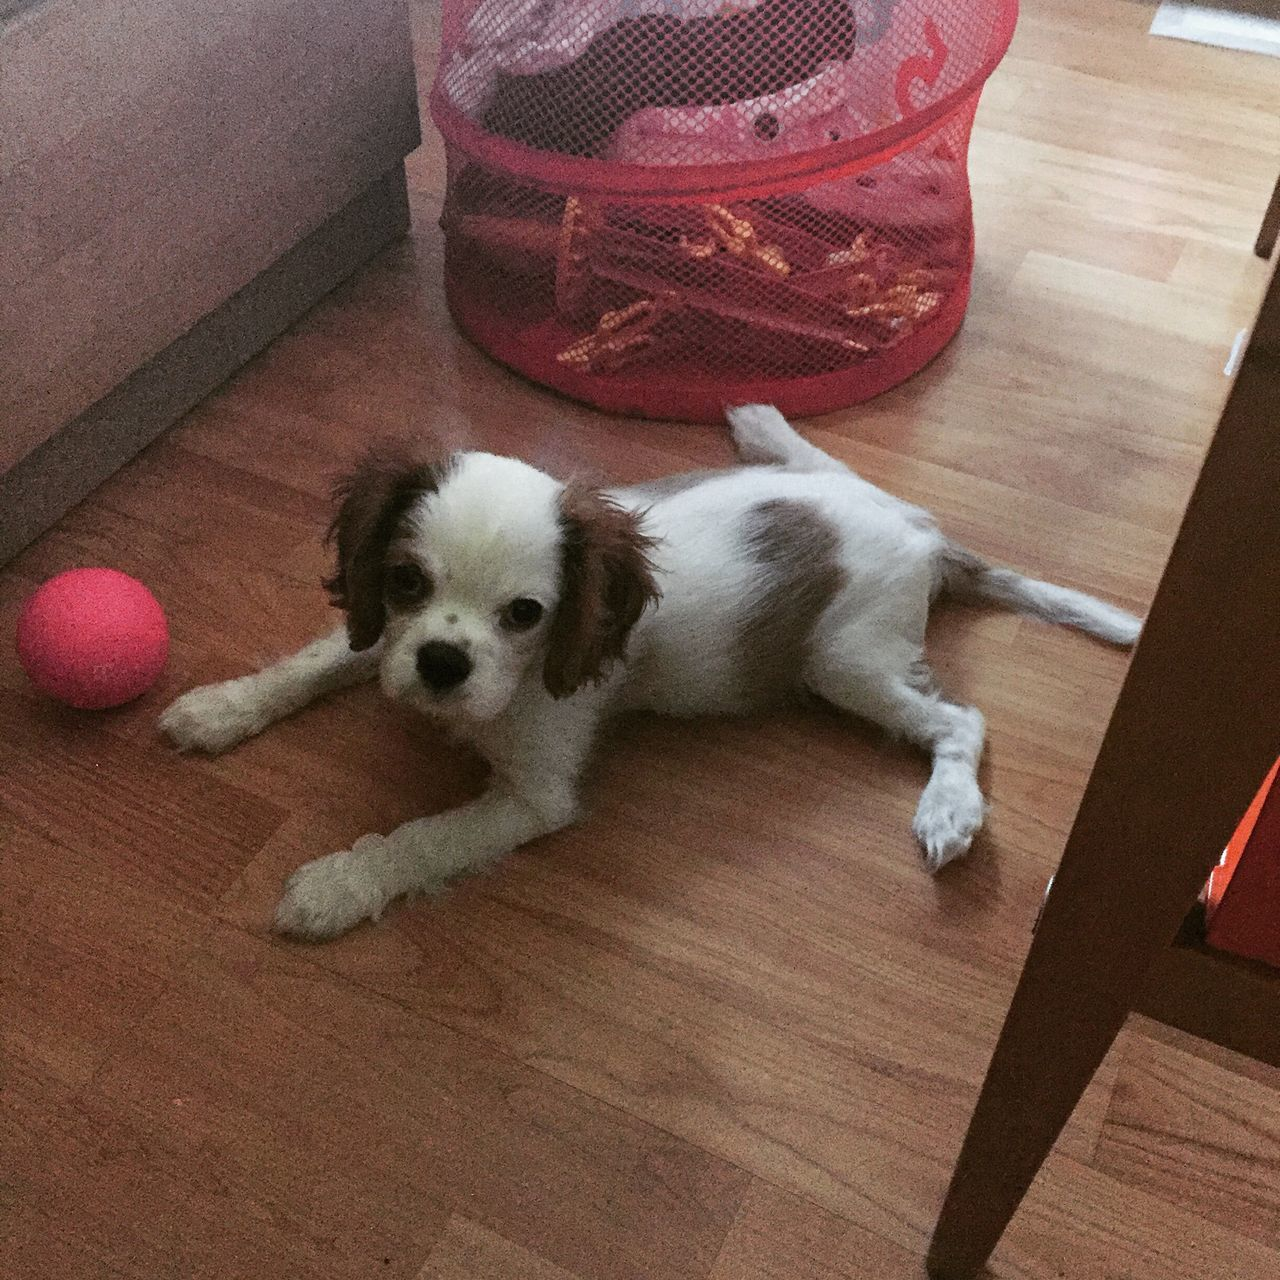 Pets Domestic Animals One Animal Mammal Animal Themes Home Interior Lying Down Indoors  Dog No People Close-up Day Cavalier King Charles Spaniel Puppy Puppy Love Ckcs